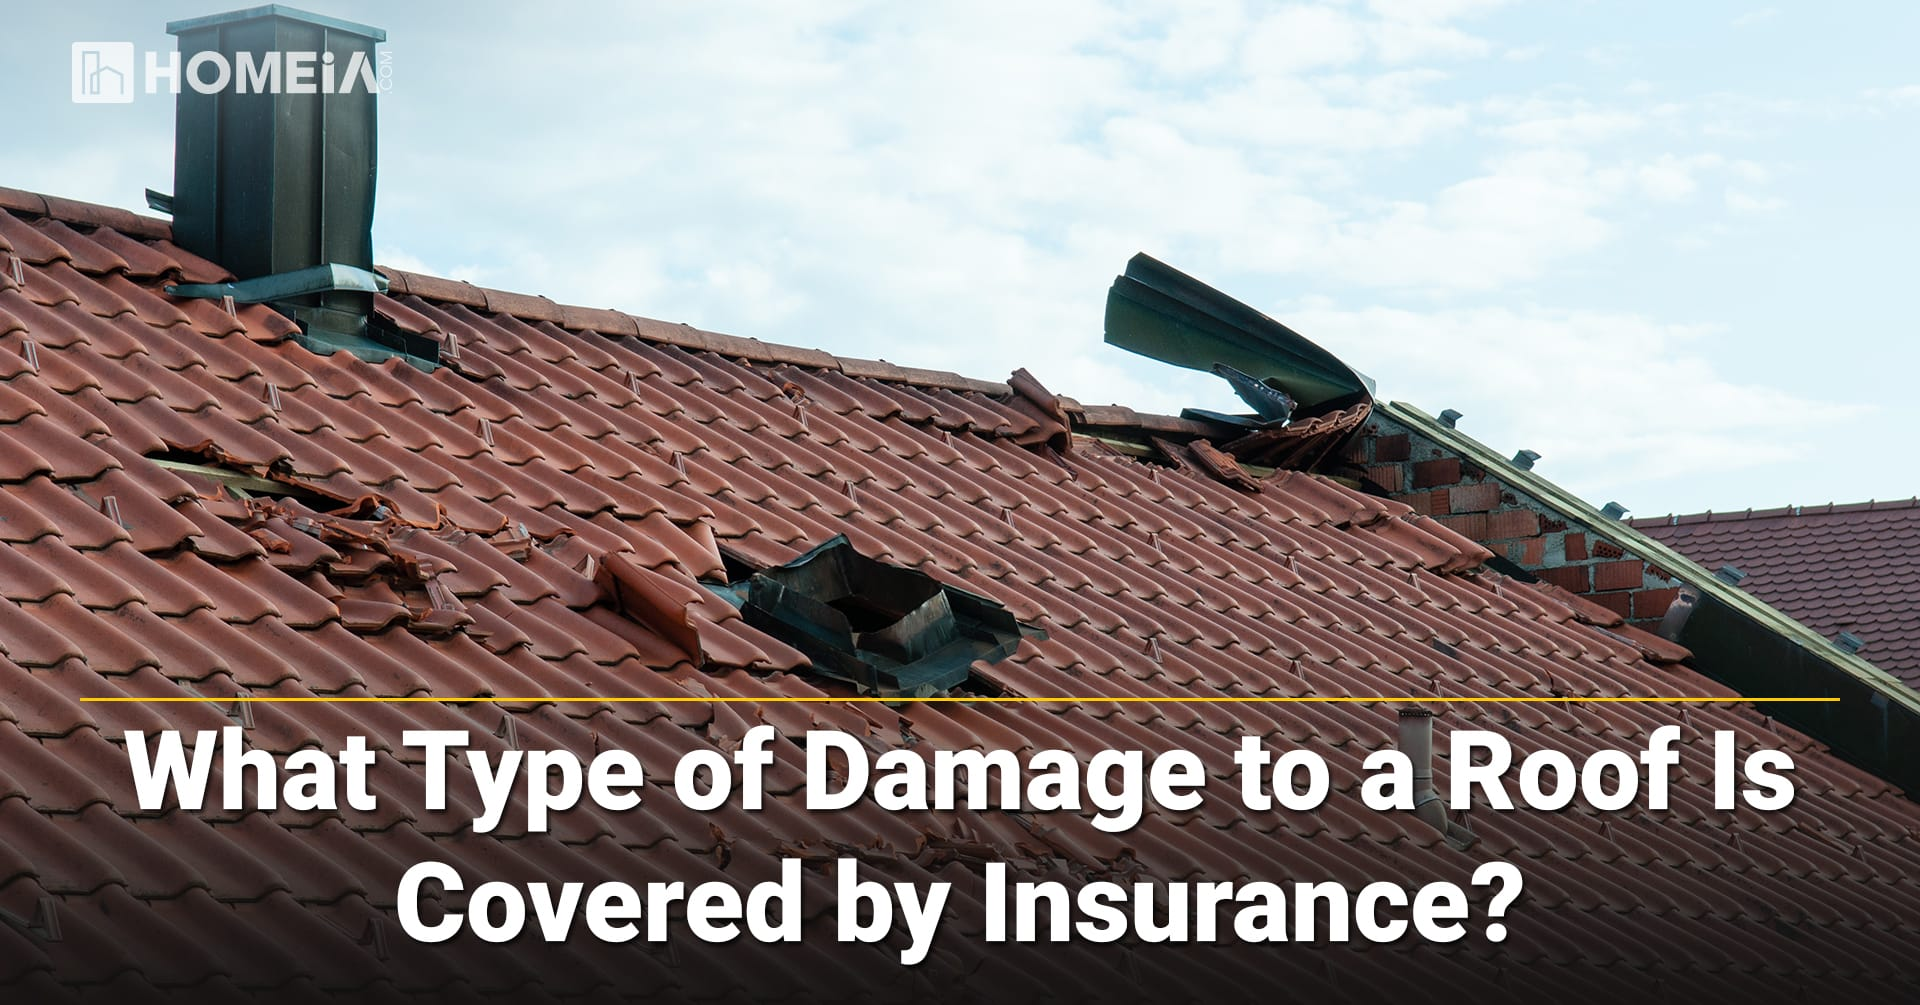 What Type of Damage to a Roof Is Covered by Insurance?